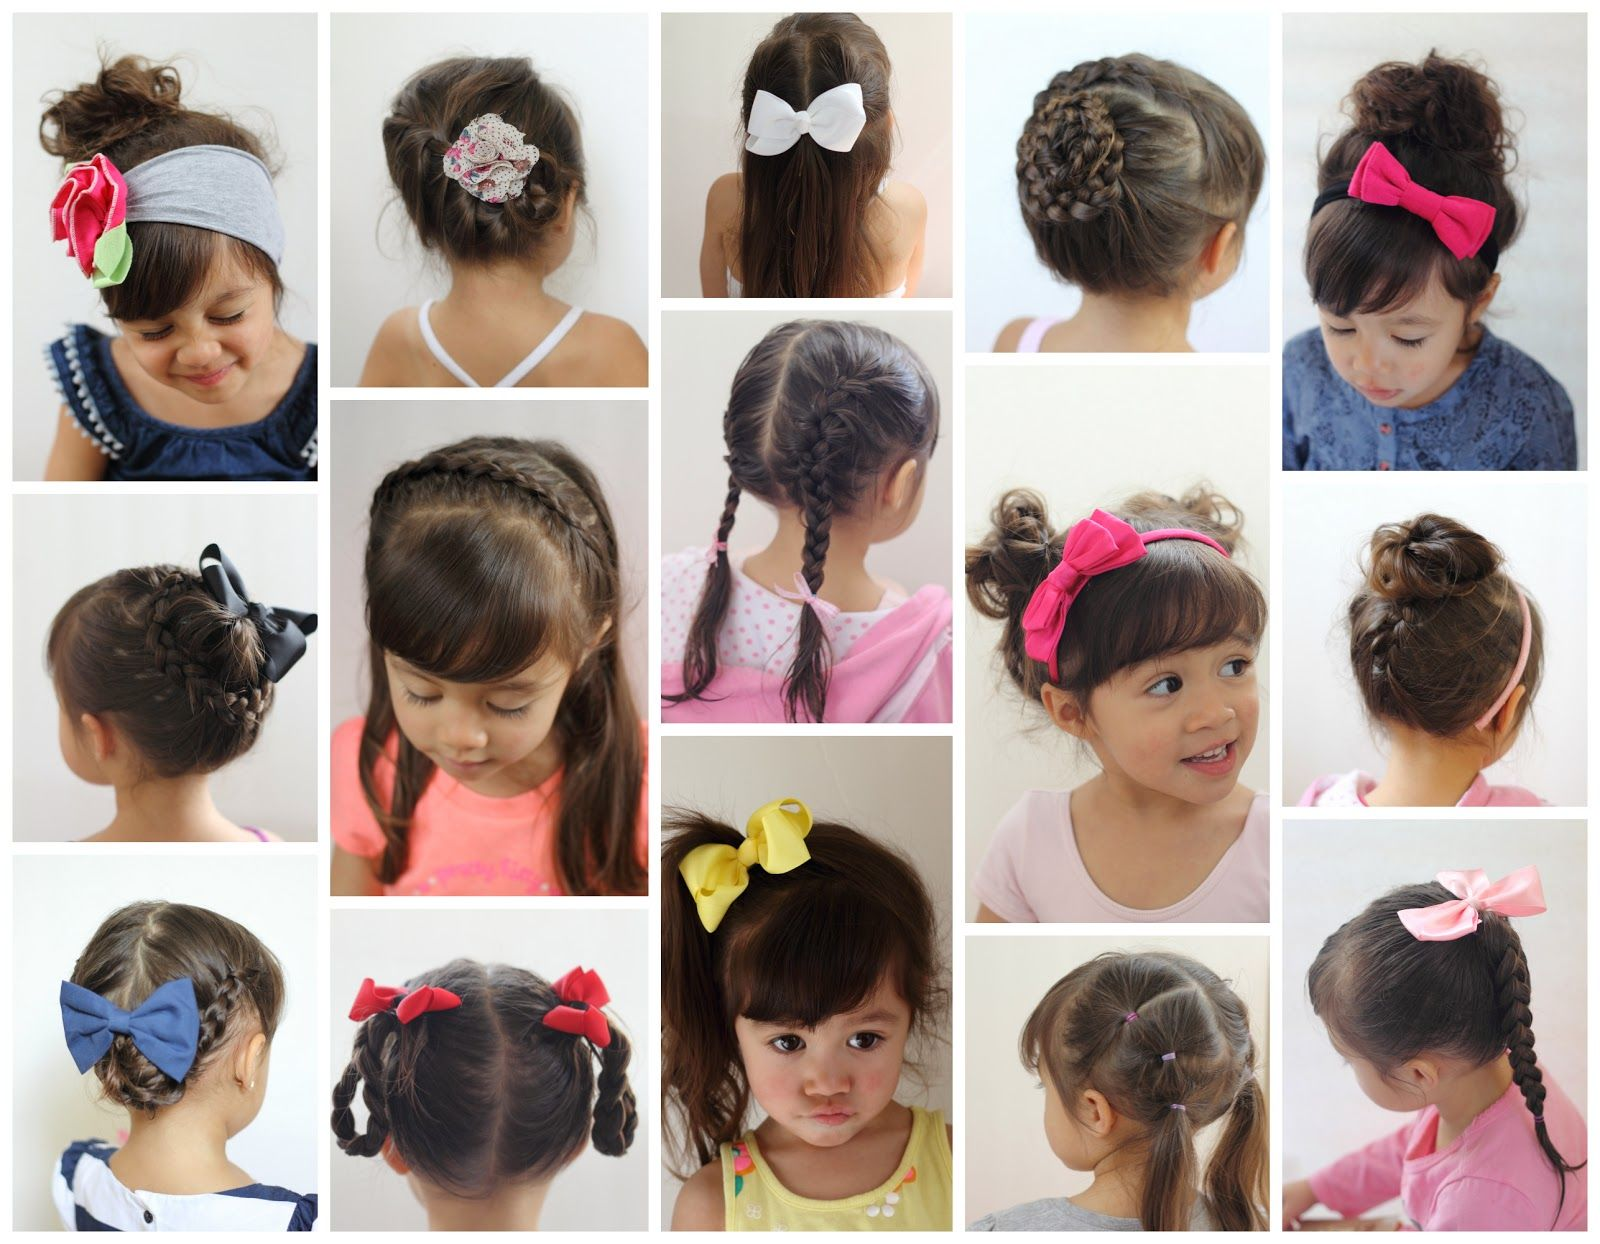 Fantastic 1000 Images About Kids Hairstyles On Pinterest Kid Hairstyles Short Hairstyles Gunalazisus